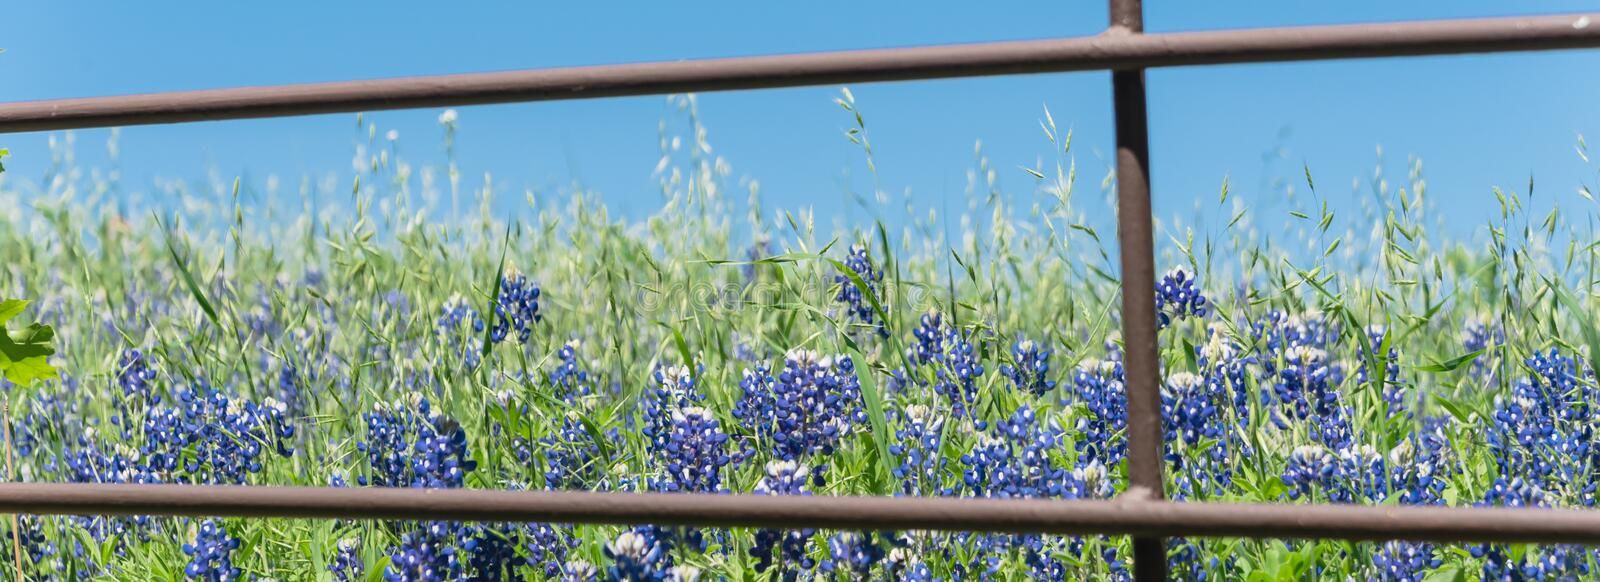 Panoramiczne blossom bluebonnet fields with rustic fence in country place of Texas, America zdjęcia royalty free